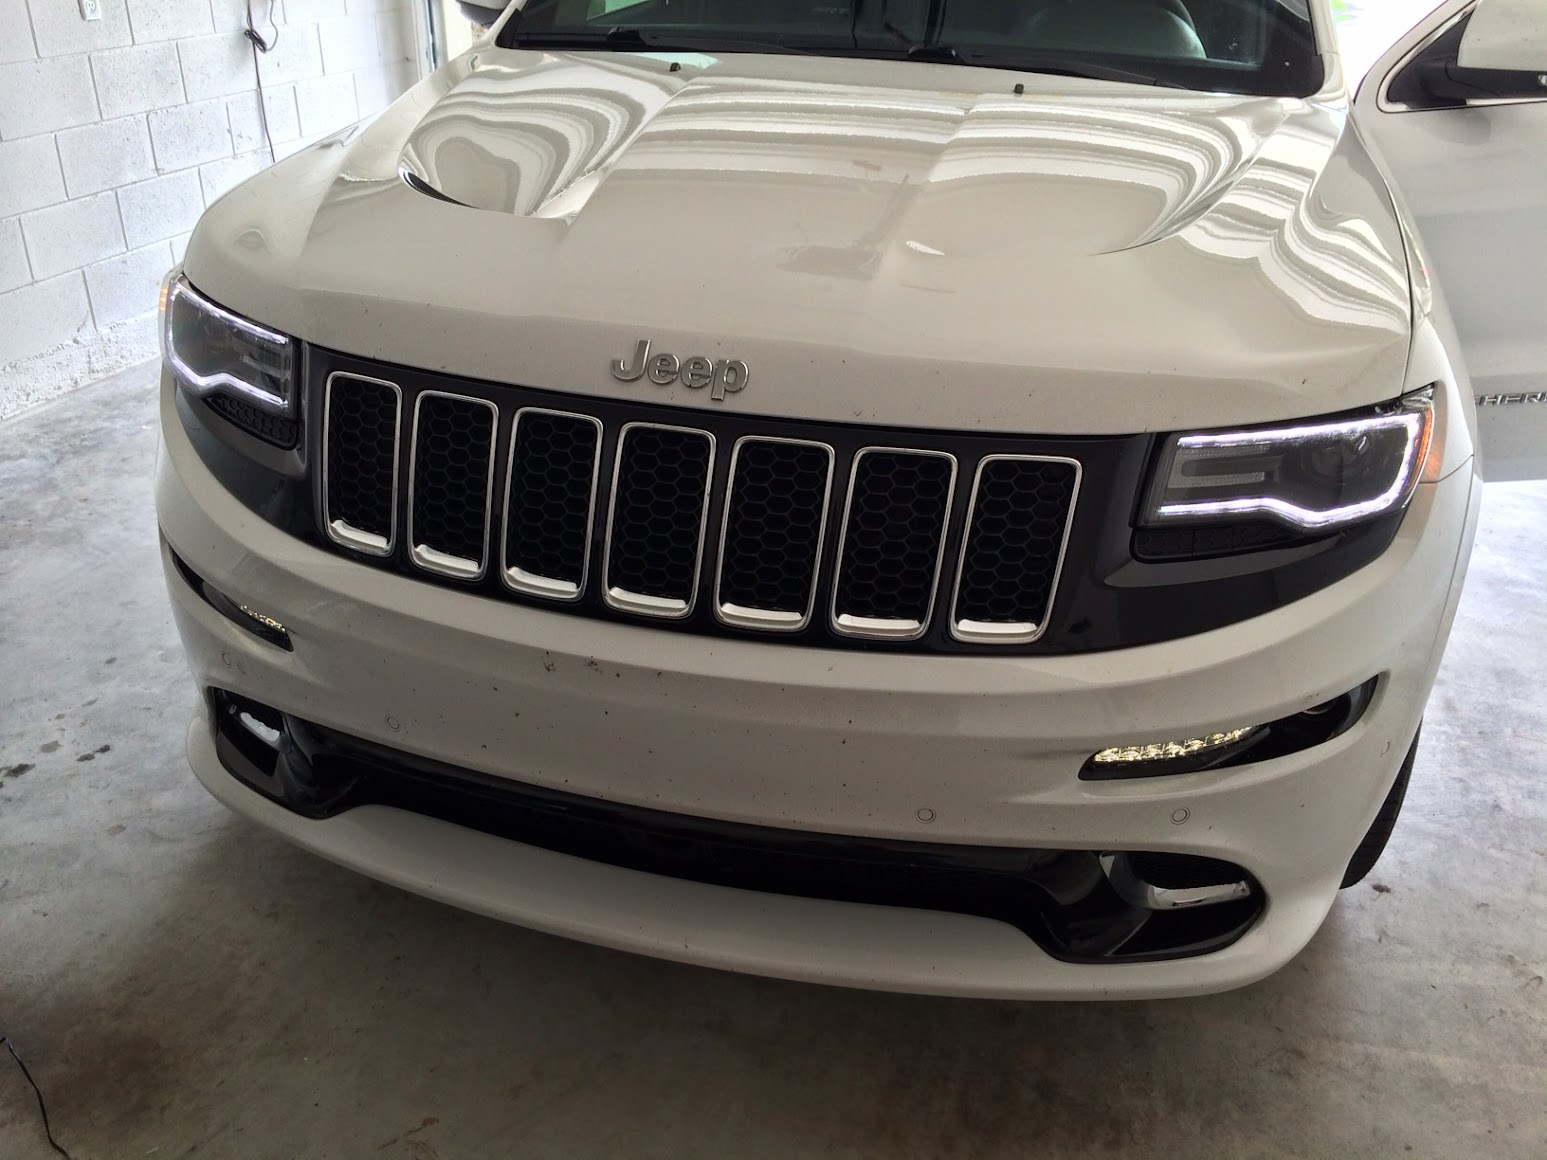 How to 2014 headlight drl cherokee srt8 forum with drl wires used instead of parking light wires asfbconference2016 Gallery